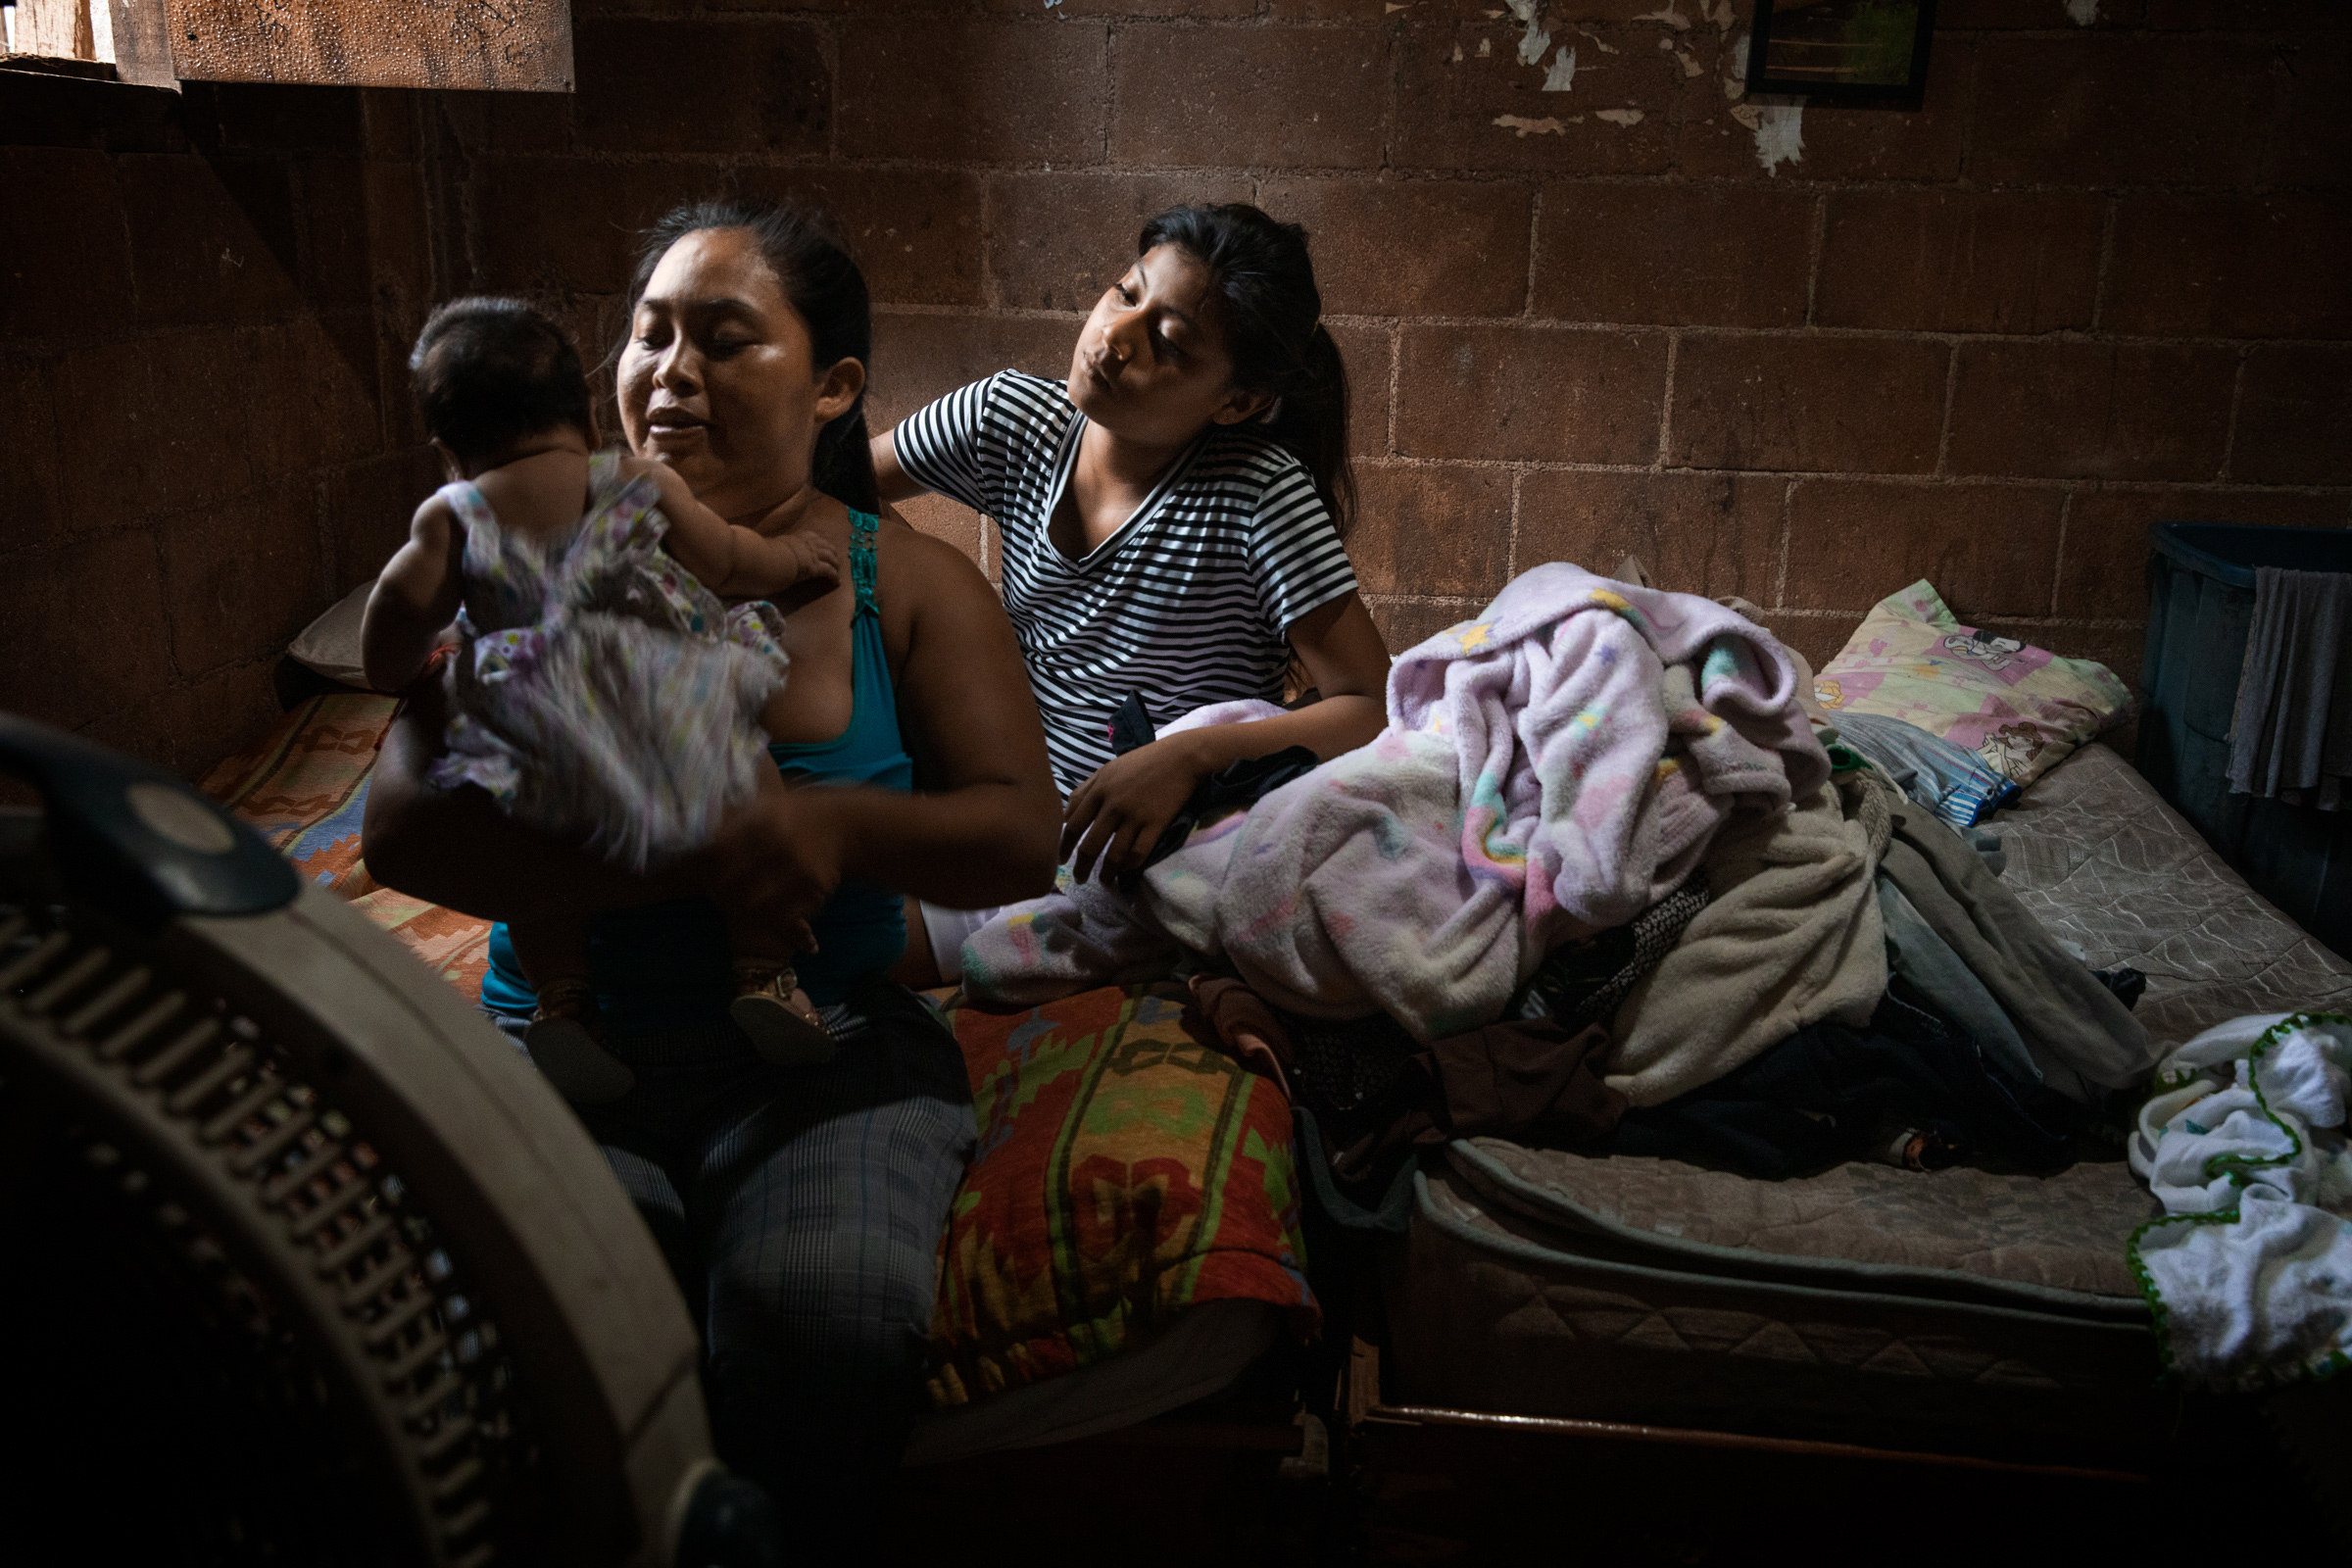 Heidi Hernandez, 29, and her sister Julisa, with Heidi's 2-month-old baby at home, in Tres Reyes, a shanty-town located on the outskirts of Cancún, on Oct. 16. Heidi's baby was due in the middle of the pandemic, but no midwife wanted to help her deliver at home, so Heidi ended up giving birth in the hospital, despite her fear of the virus.